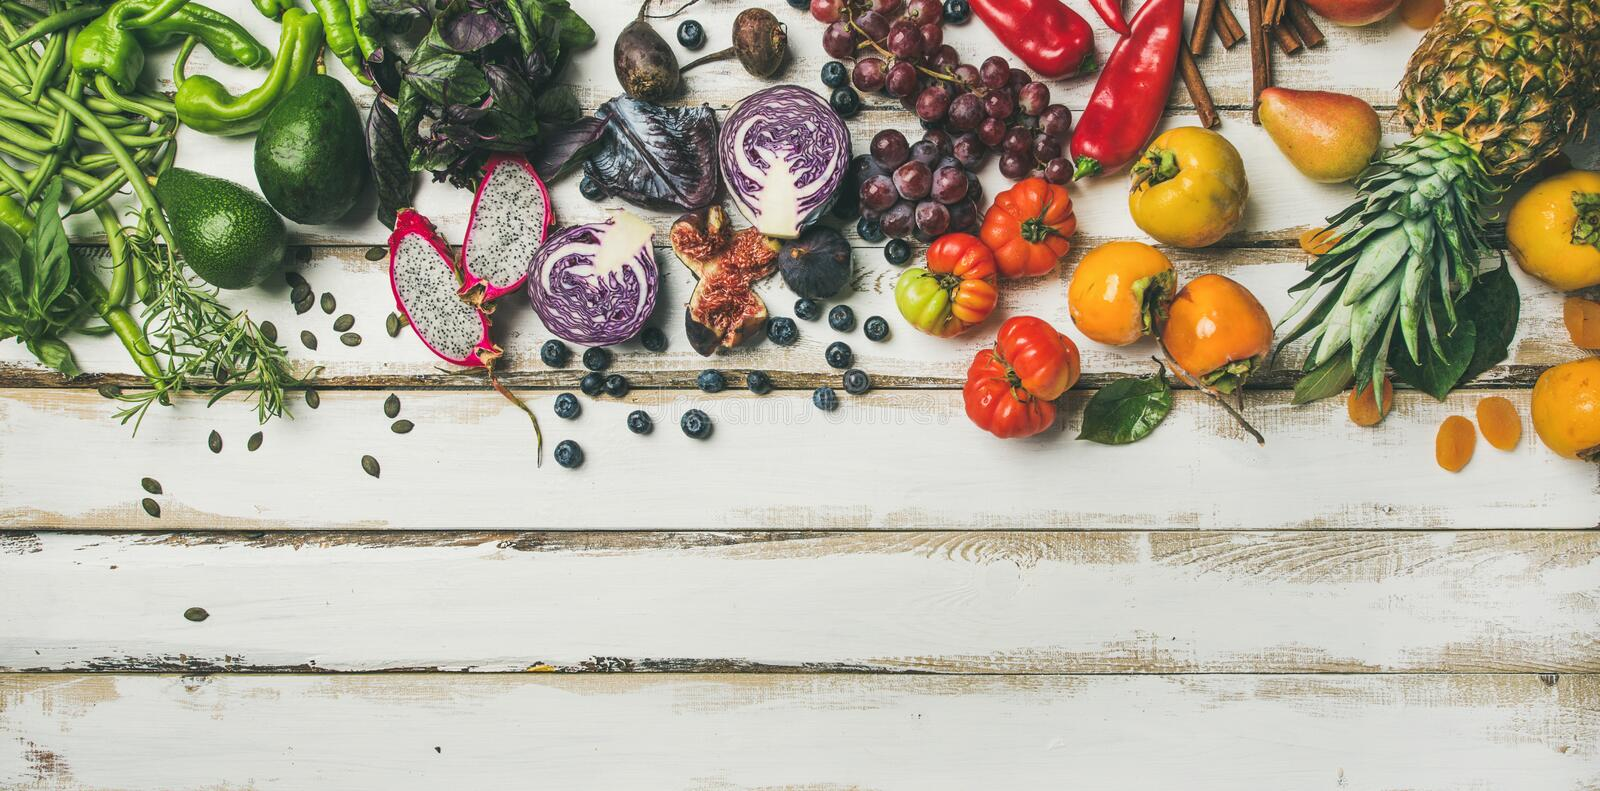 Helathy raw vegan food cooking background. Flat-lay of fresh fruit, vegetables, greens, superfoods over white rustic wooden table, top view, copy space. Clean stock image